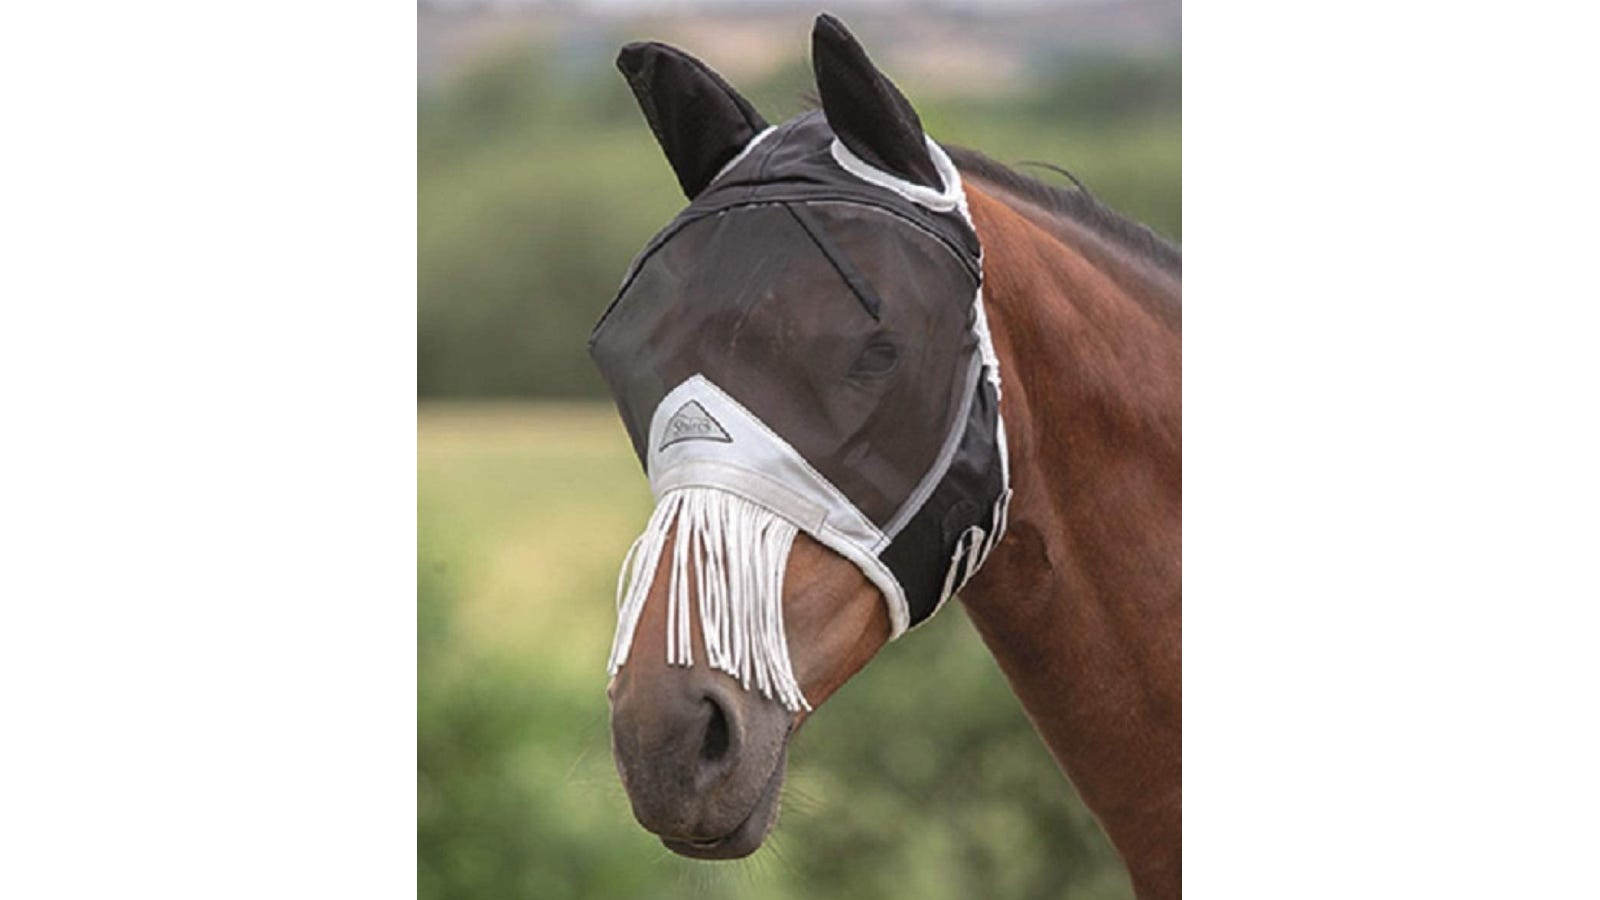 Dark brown horse wearing a black and white mask that features fringe ropes hanging over its nose.